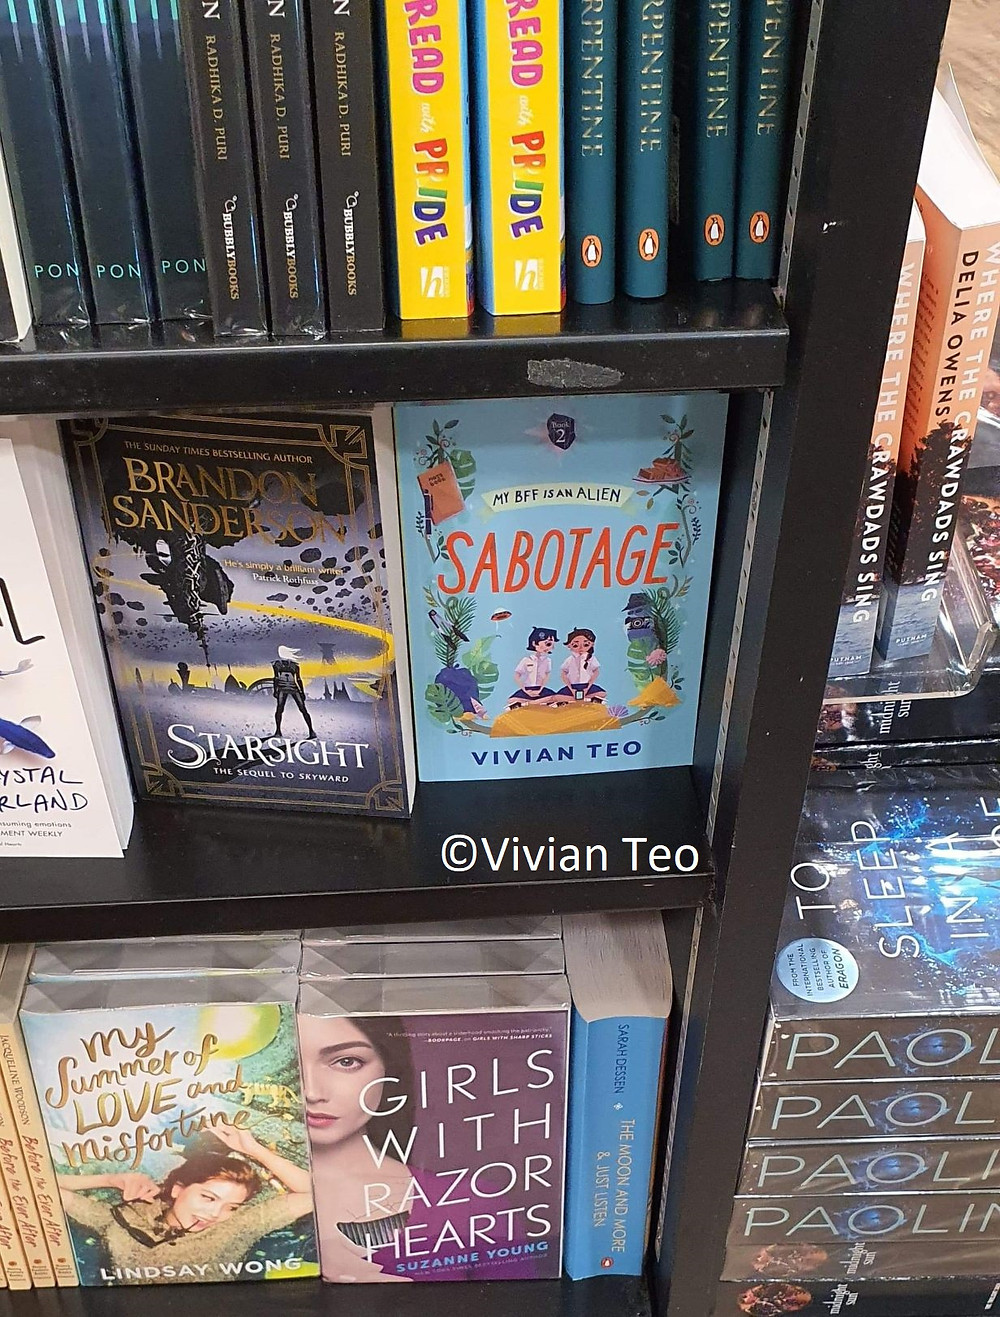 My BFF is an alien sabotage Vivian Teo Times bookstore Singapore middle grade book singlit children adventure reading